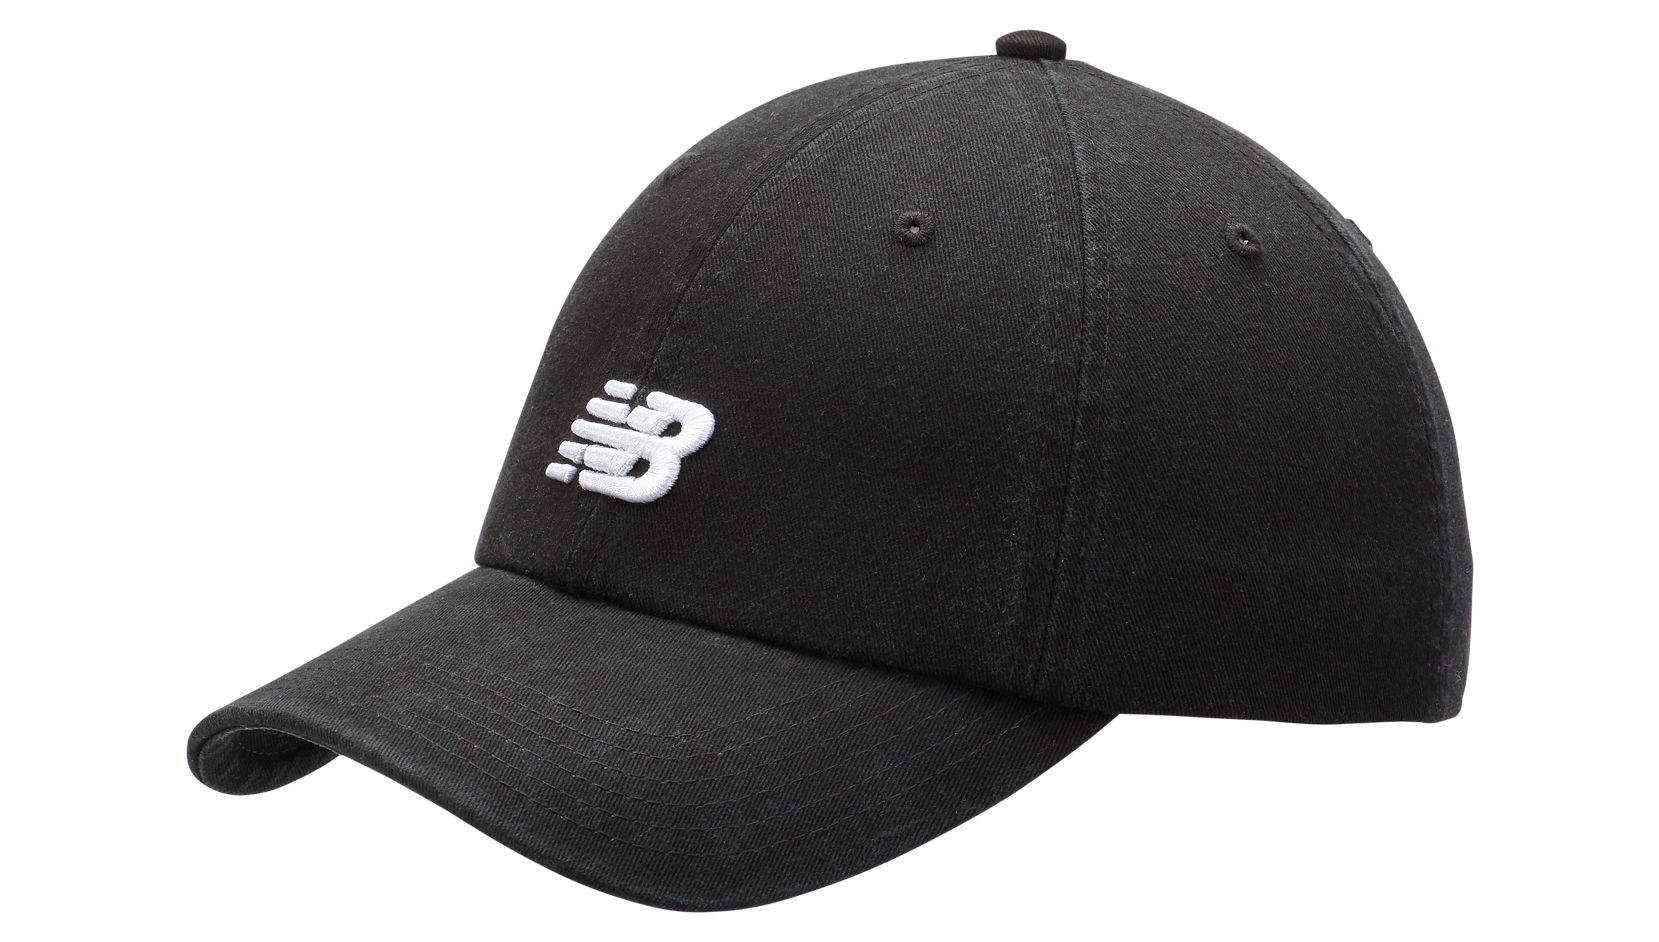 6-PANEL CURVED BRIM NB CLASSIC HAT